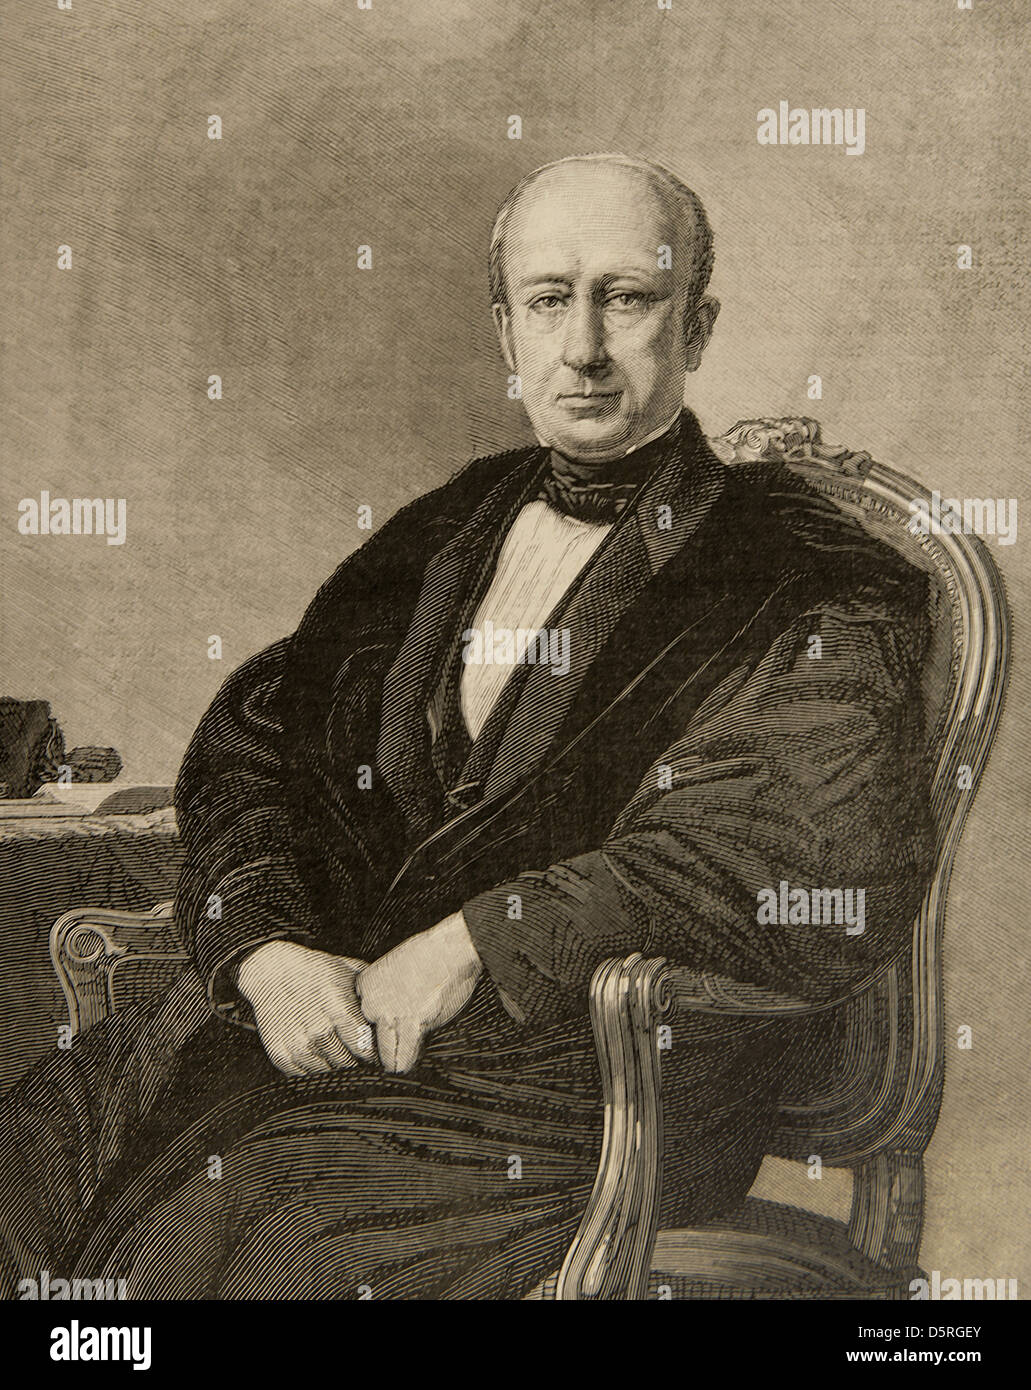 Manuel Cortina Arenzana (1802-1879). Spanish political and military. Engraving by Arturo Carretero. - Stock Image